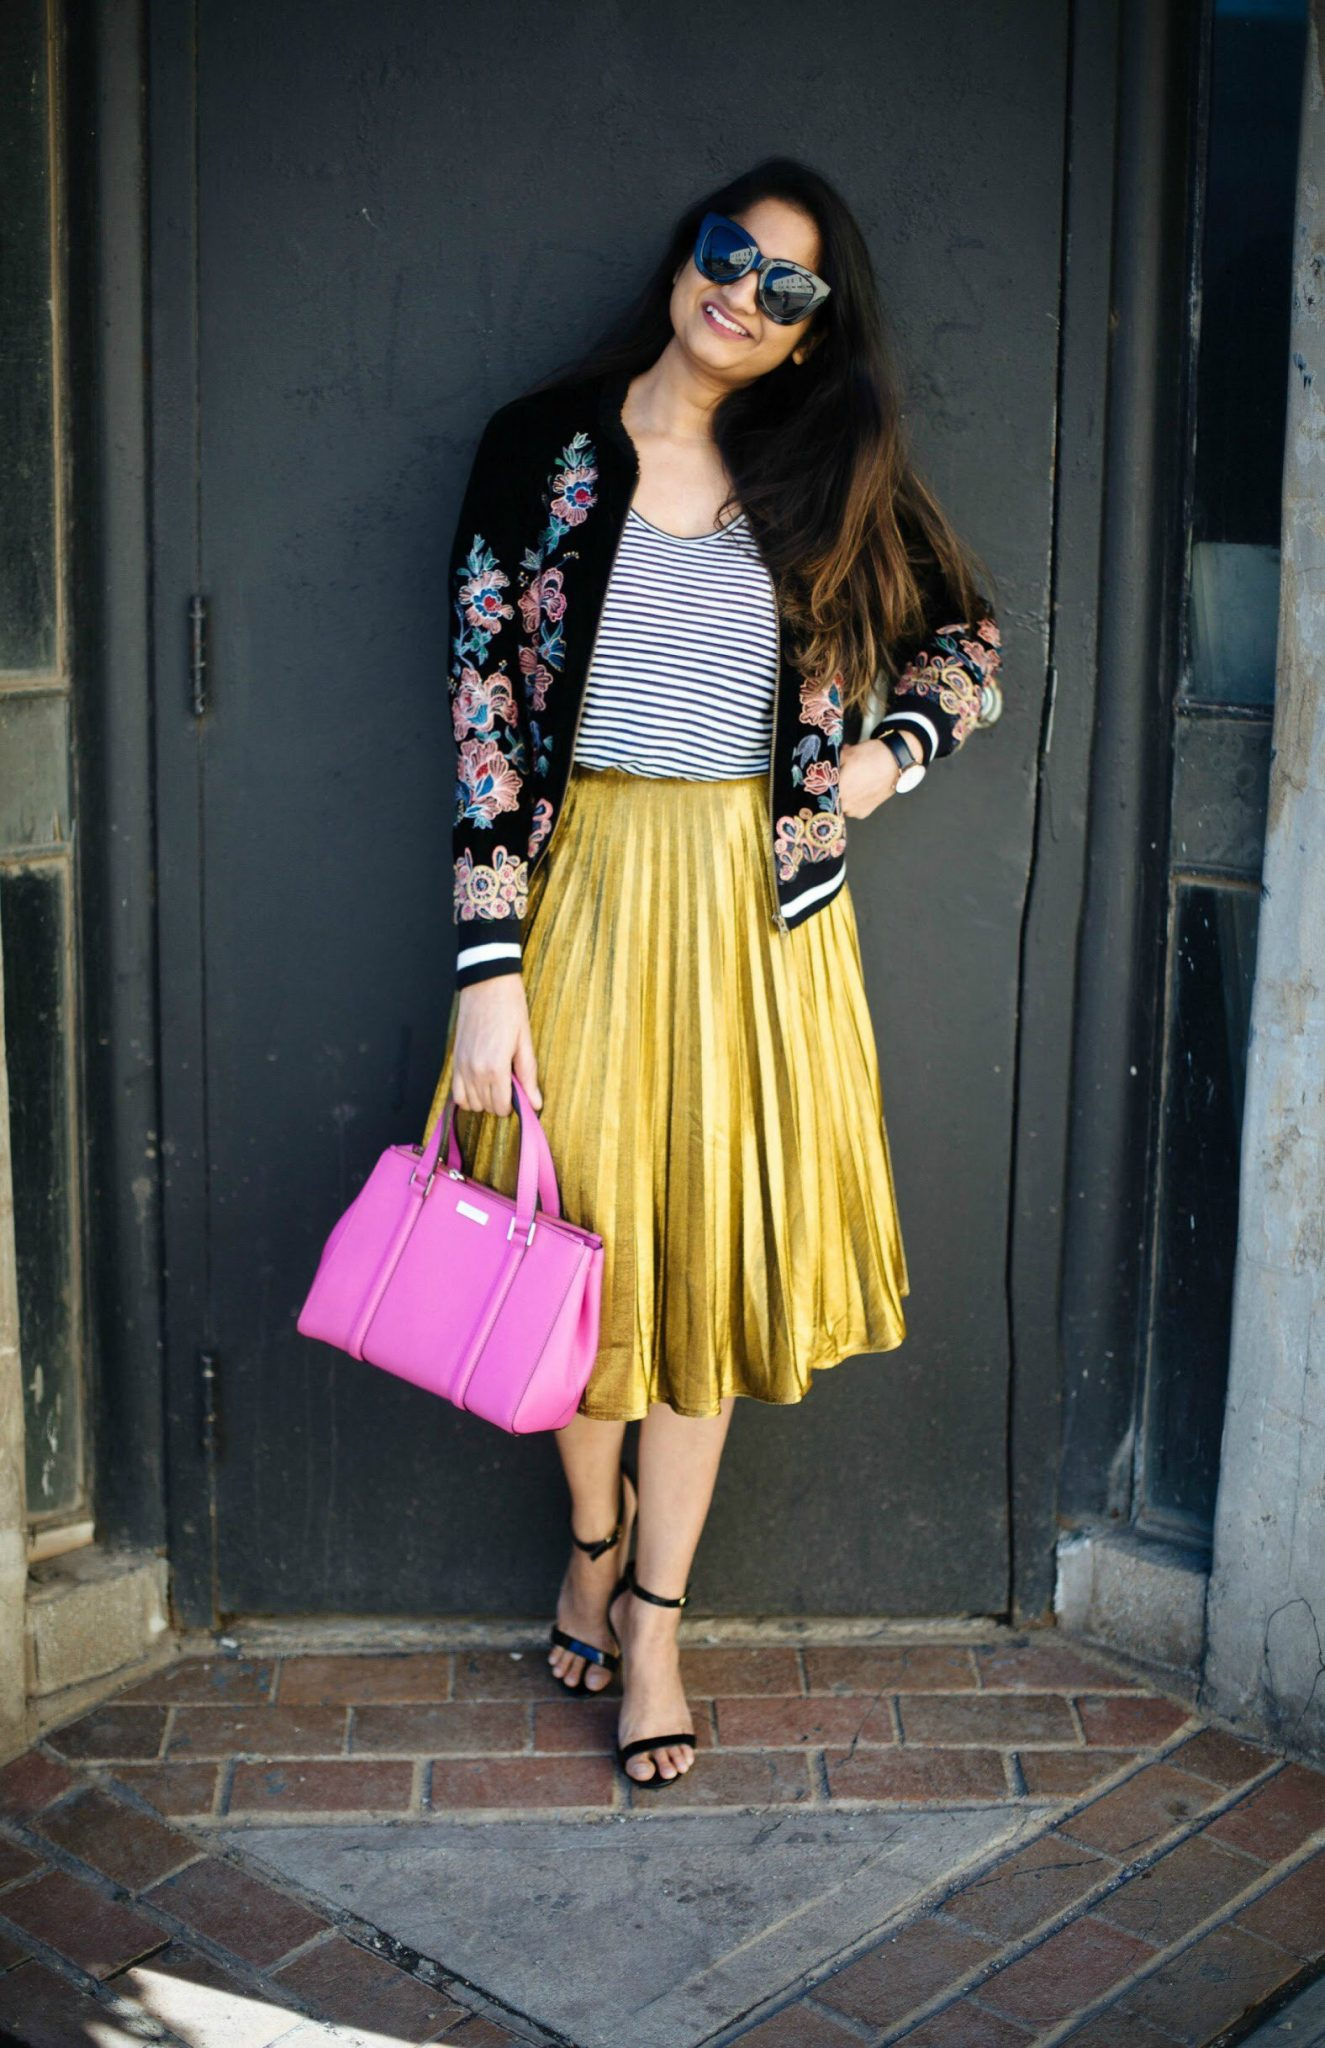 Lifestyle Blog Dreaming loud sharing how to wear metallic skirt casually with embroidery floral bomber jacket - Spring Outfit Ideas featured by popular Ohio modest fashion blogger, Dreaming Loud